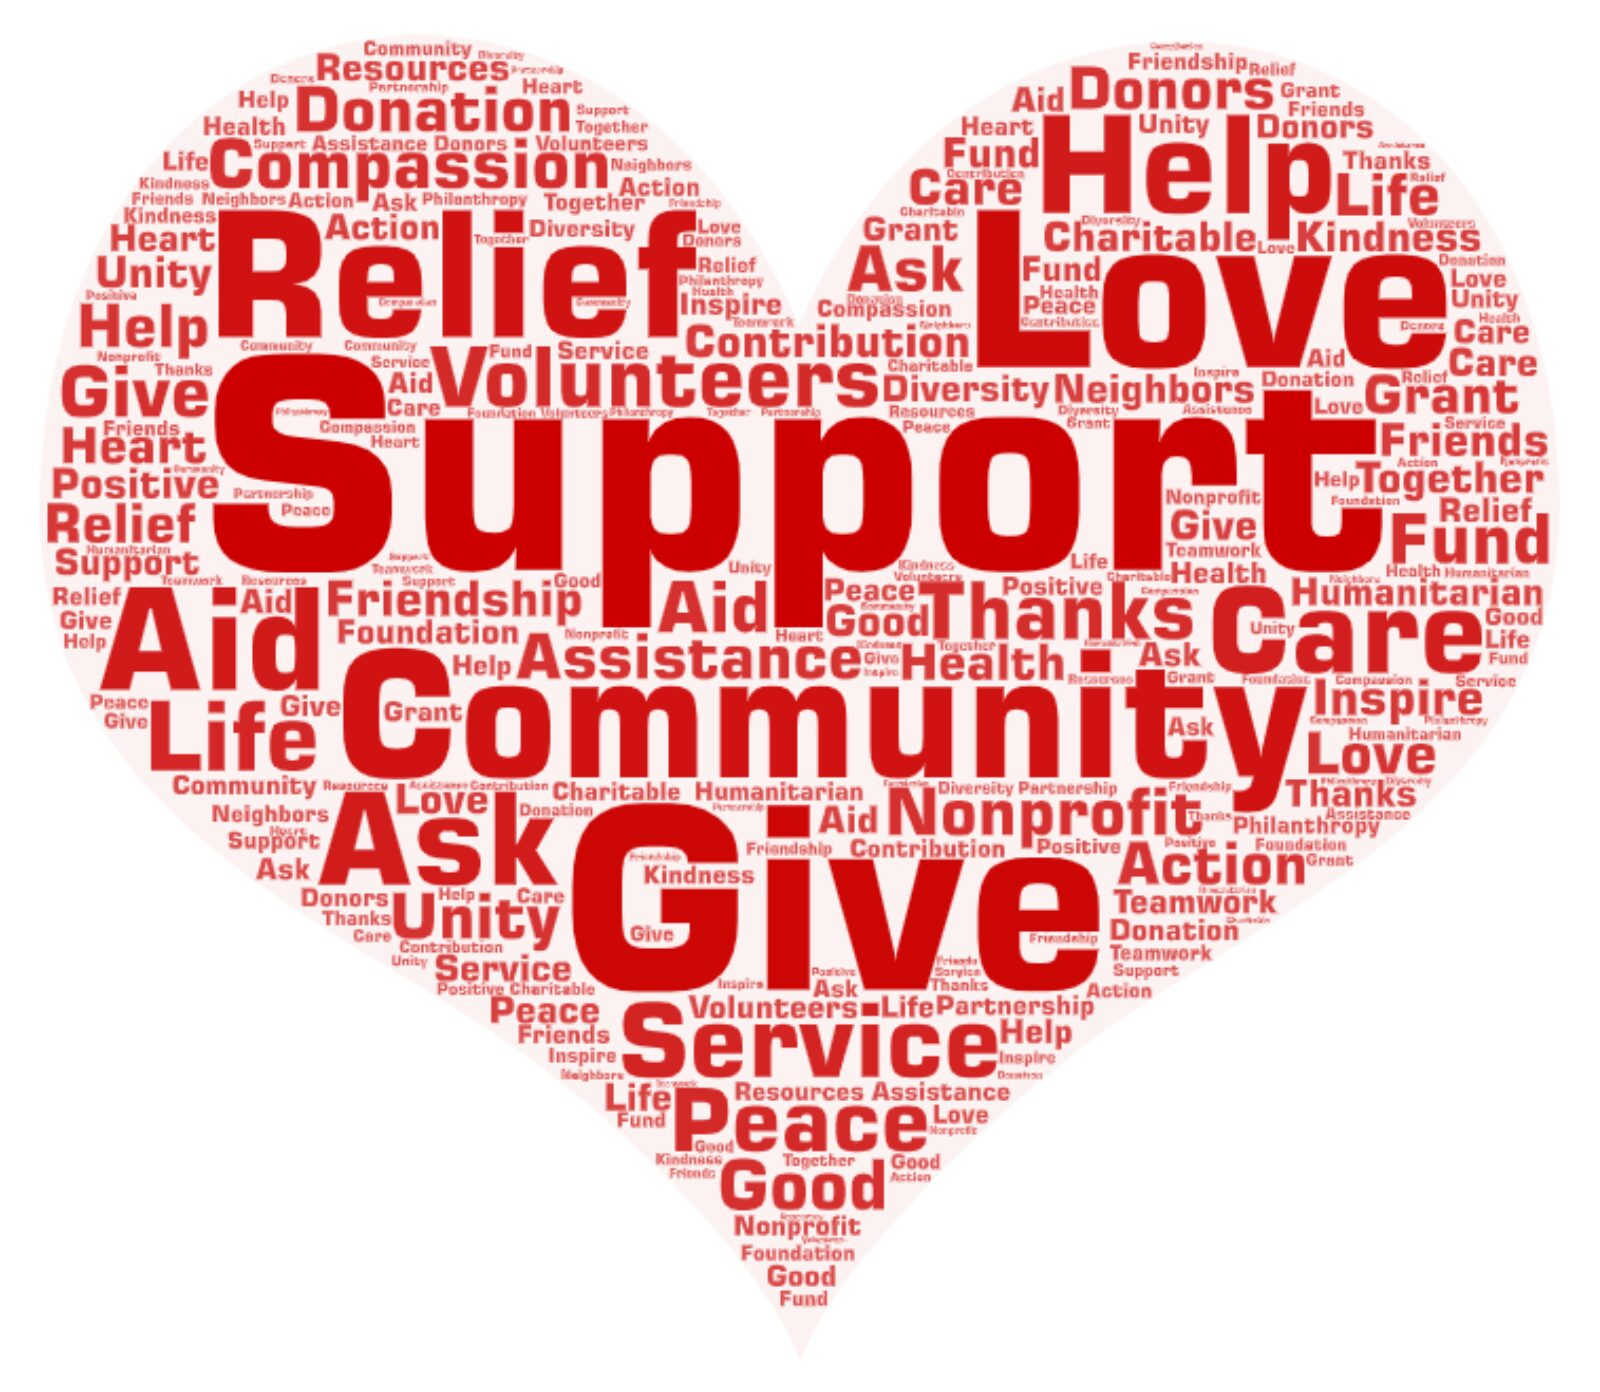 More Highlights From Local Nonprofits of the COVID-19 Relief Grant